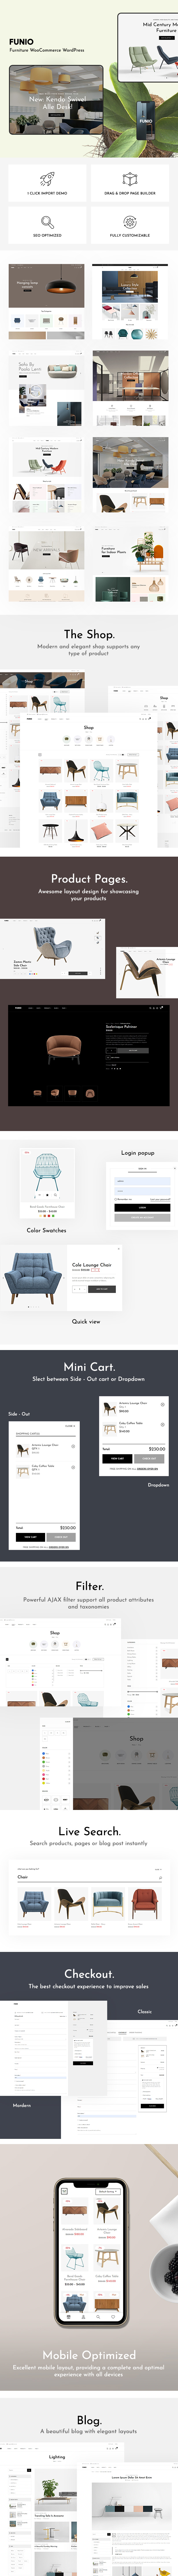 Funio – Funiture WooCommerce WordPress Theme - 1